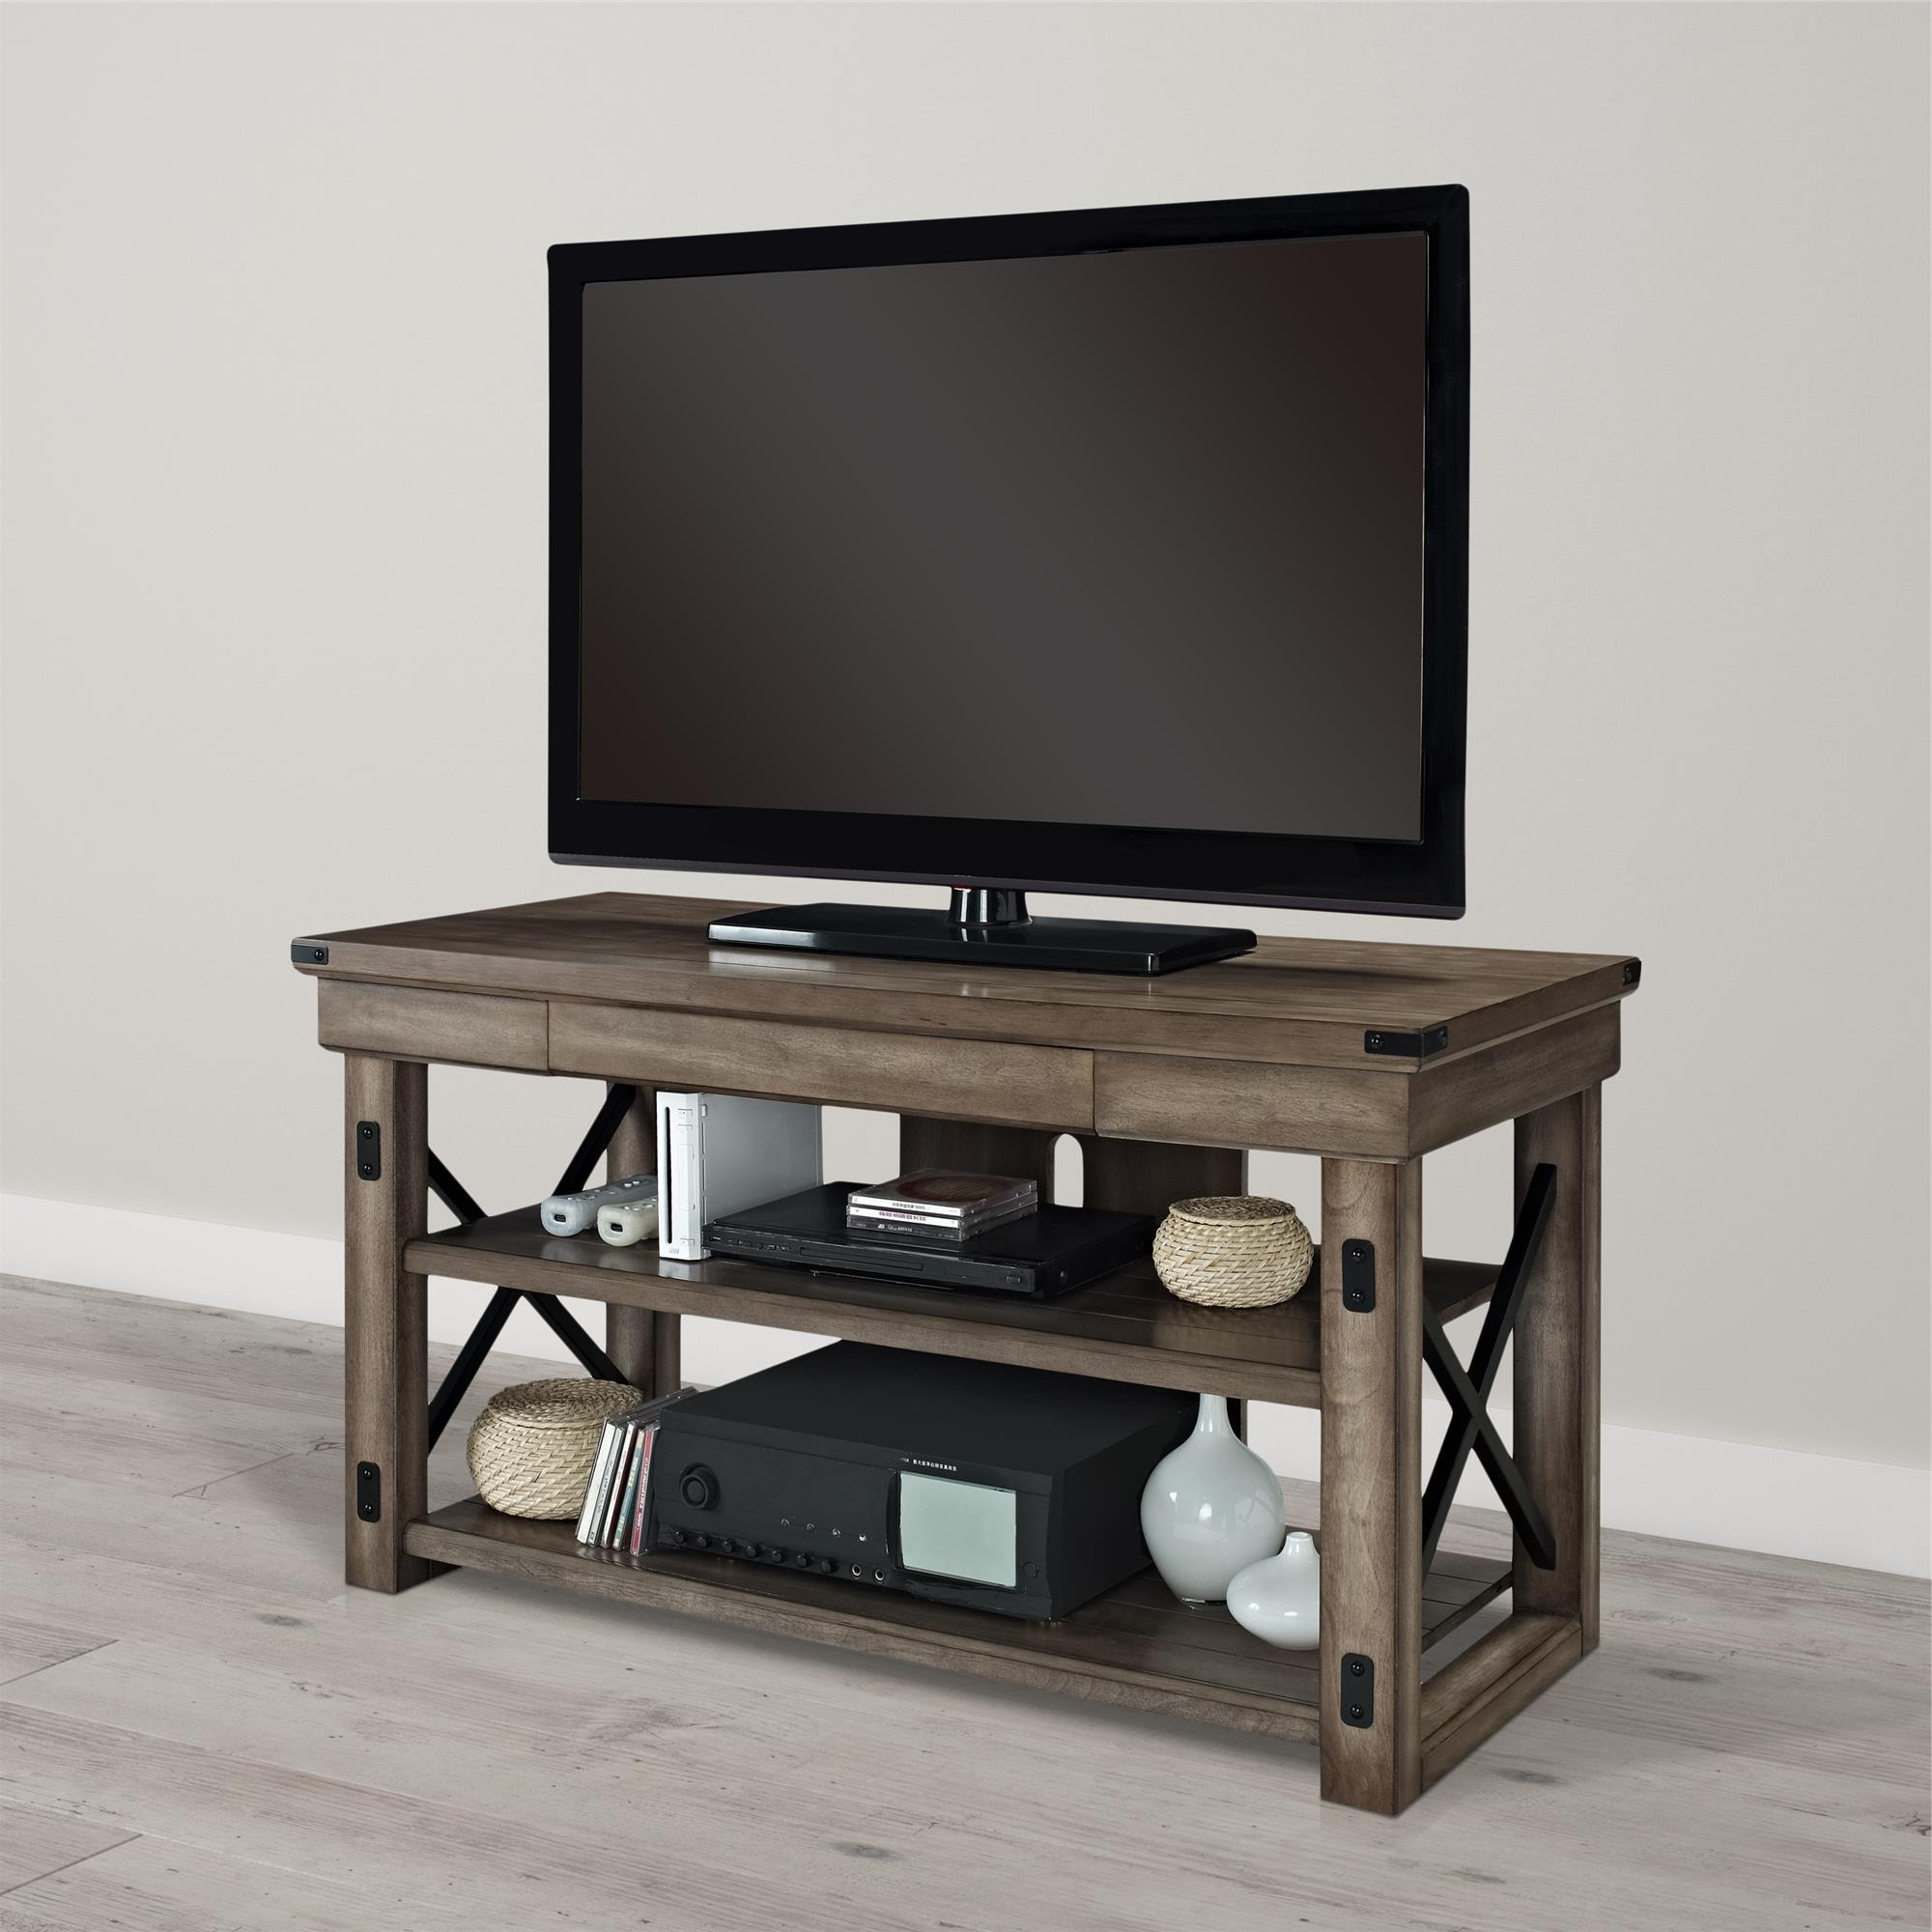 Popular Shop Avenue Greene Woodgate Wood Veneer Tv Stand For Up To 50 Inch Throughout Wooden Tv Stands For 50 Inch Tv (View 12 of 20)